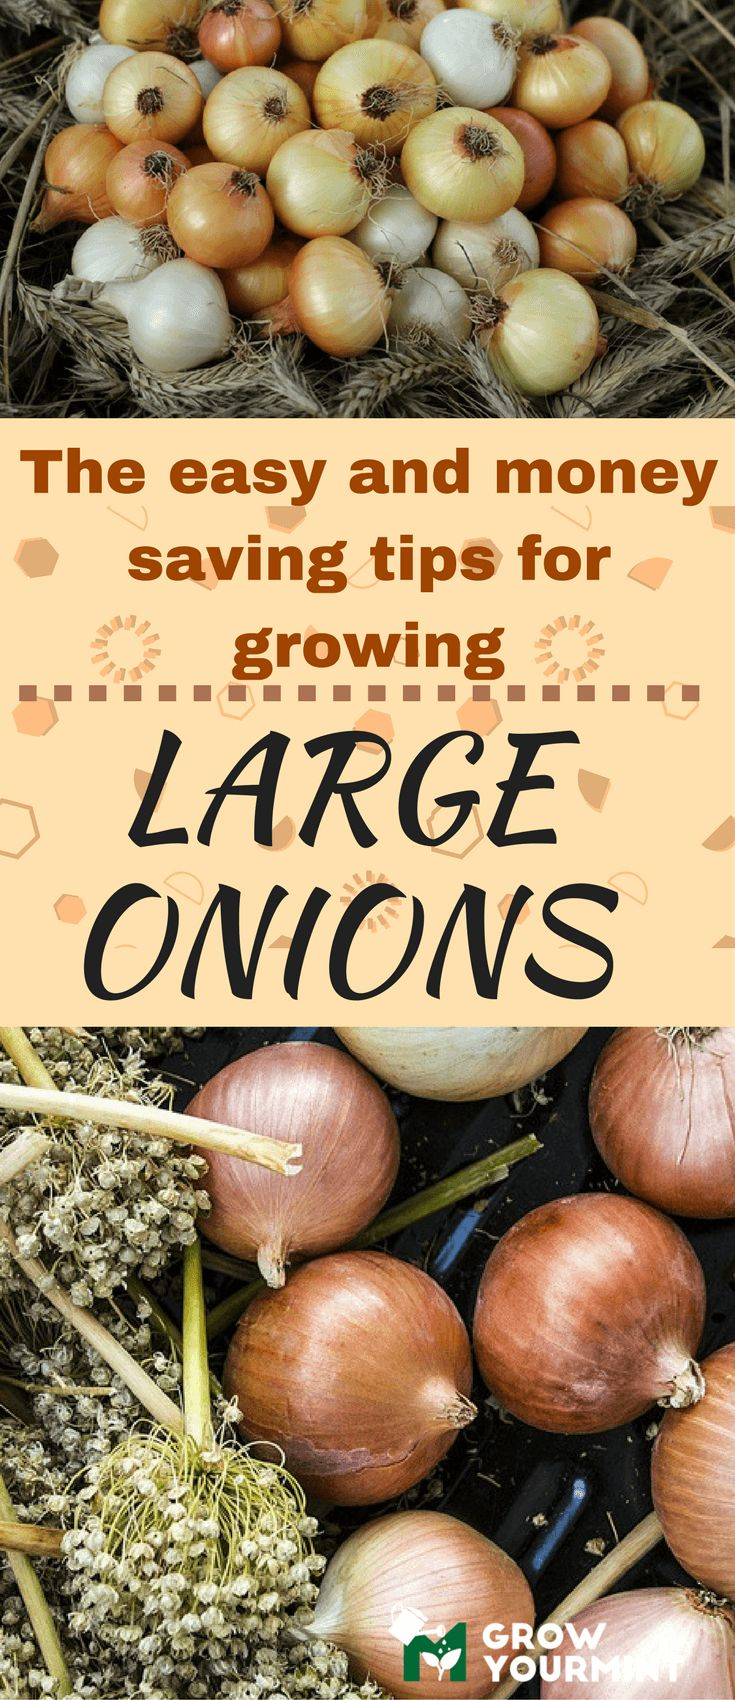 Easy and money saving tips on how to grow large onions  #gardens#organic#onion#growyourmint.com